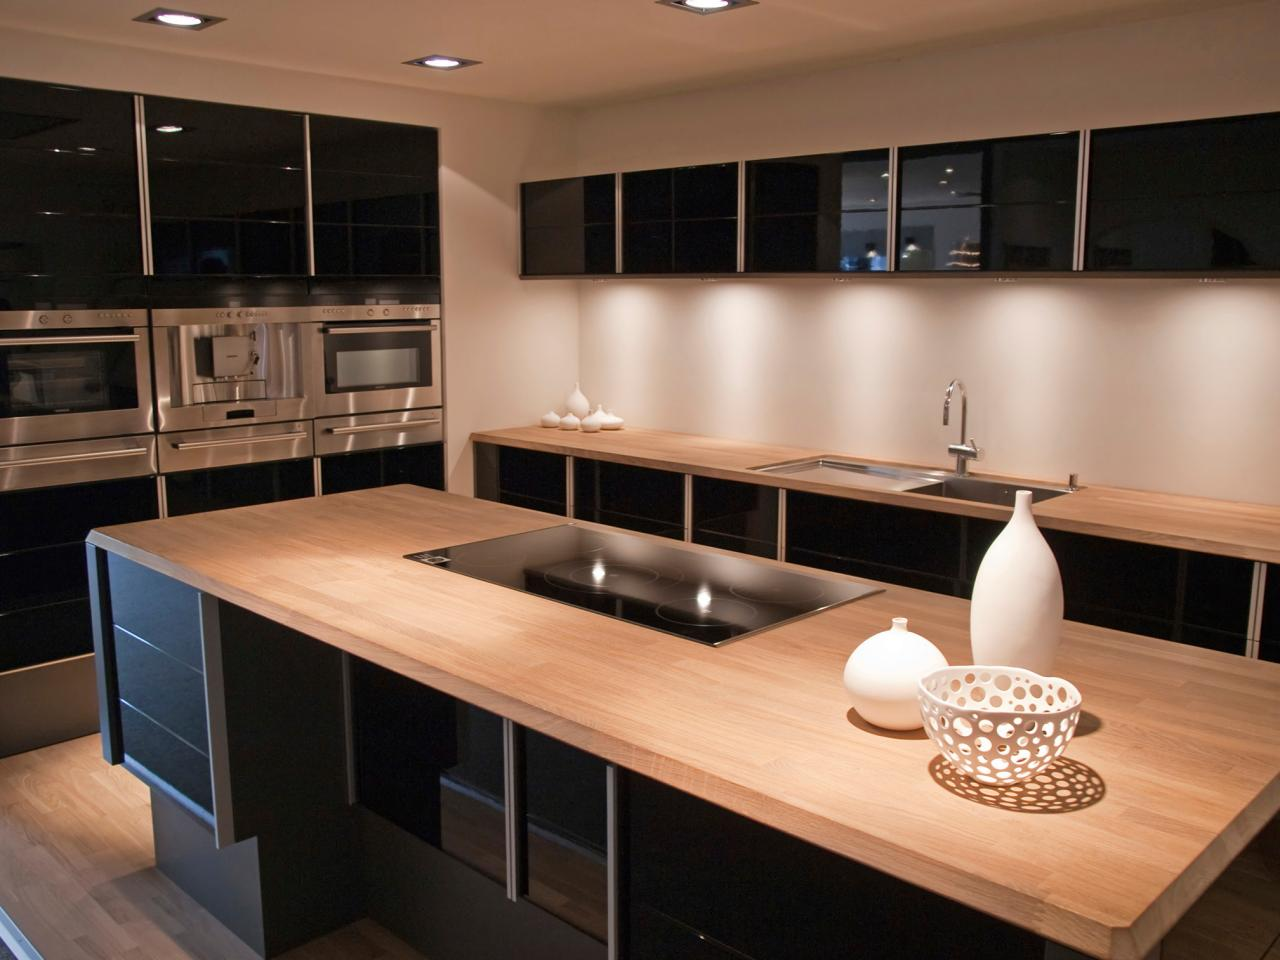 Marvelous Design Of The Kitchen Countertop Materials With Young Brown Wooden Color Materials Added With Black Wooden Cabinets